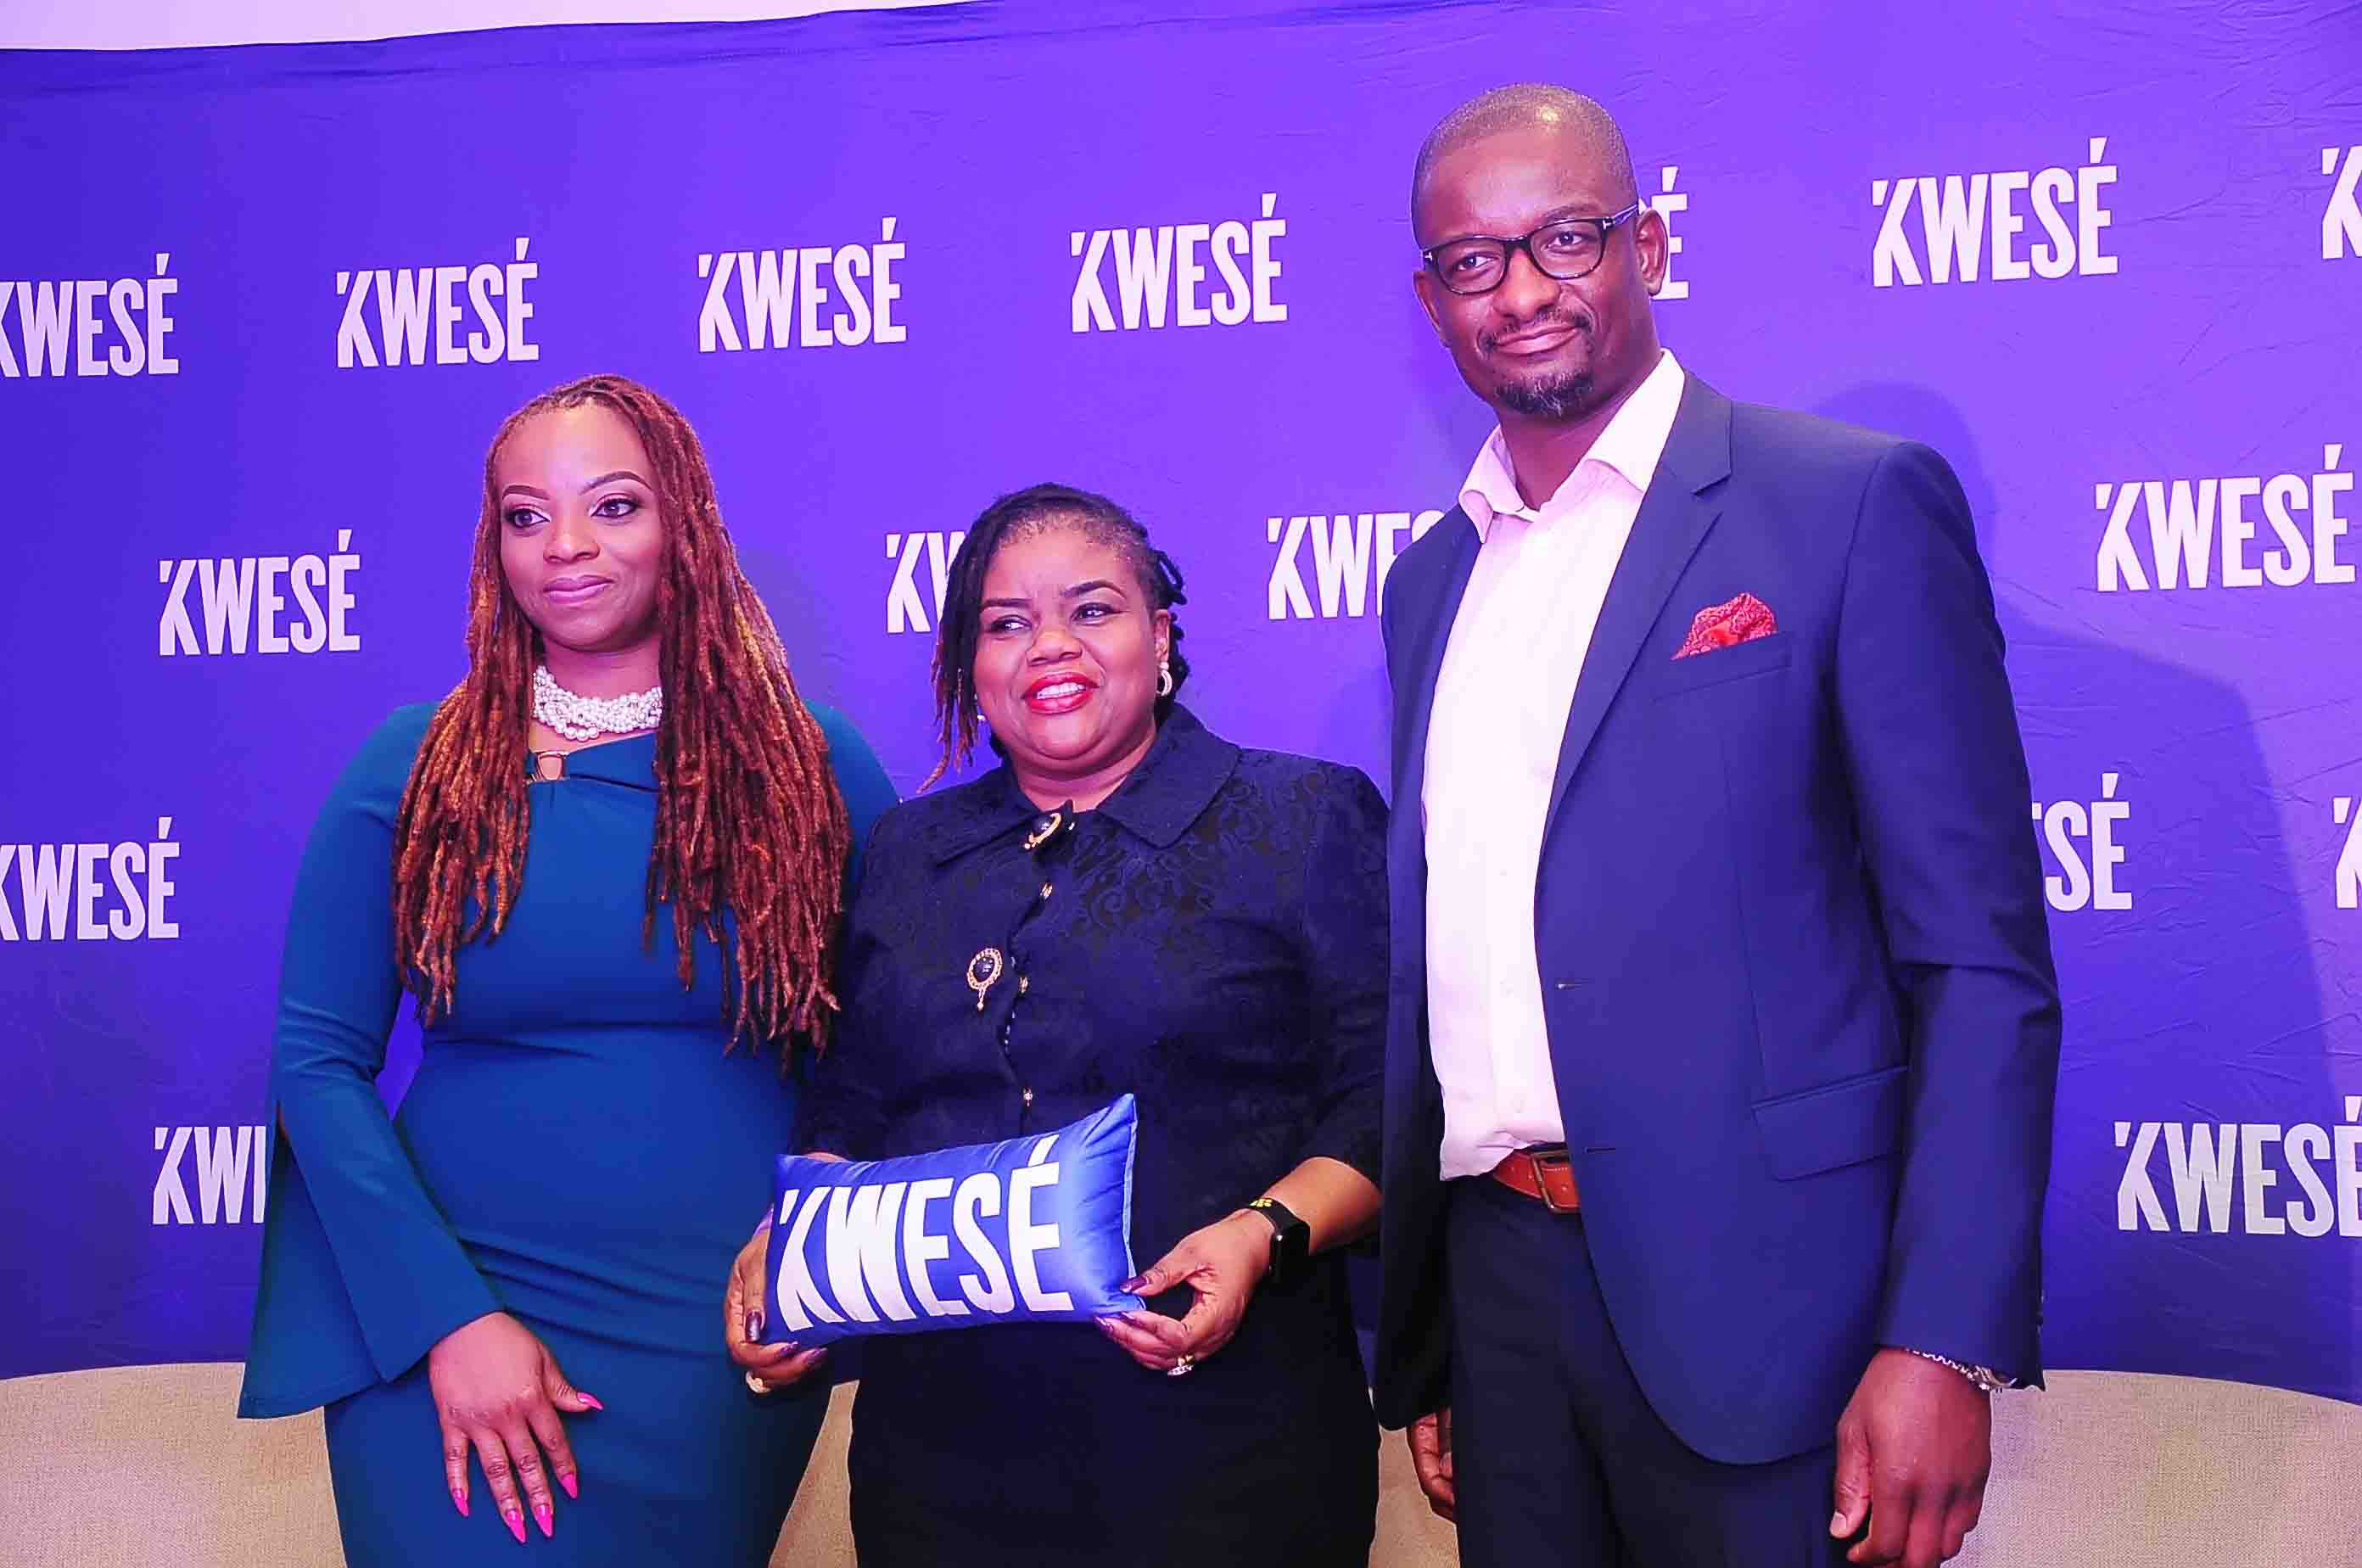 [In Pictures] KweseTV Nigeria Launch In Lagos, Promises More For Less